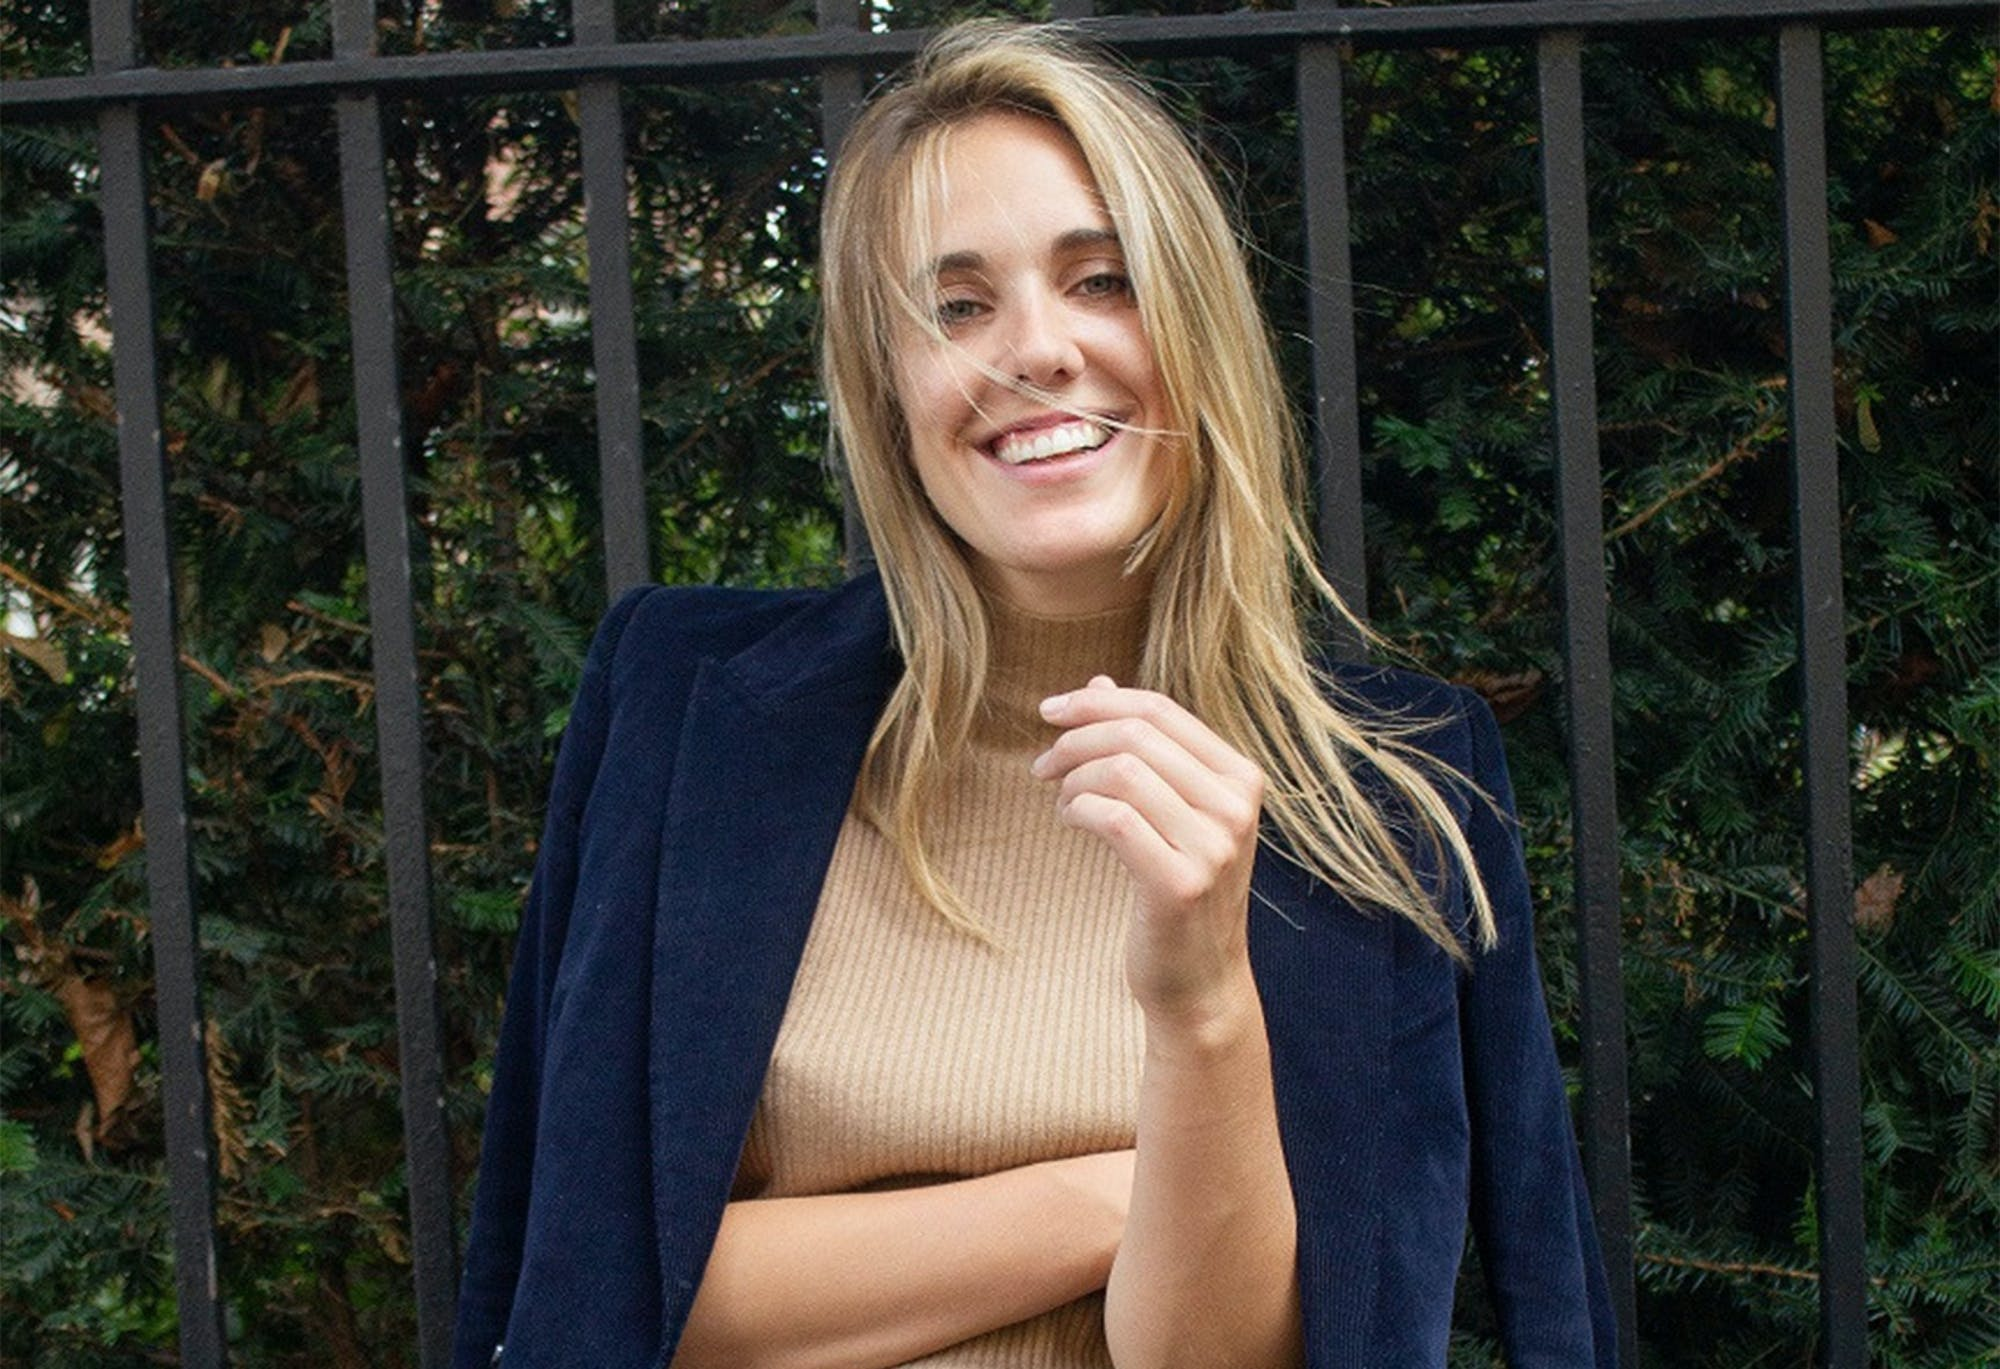 Five Minutes with the Founder Daisy Knatchbull, Founder, The Deck